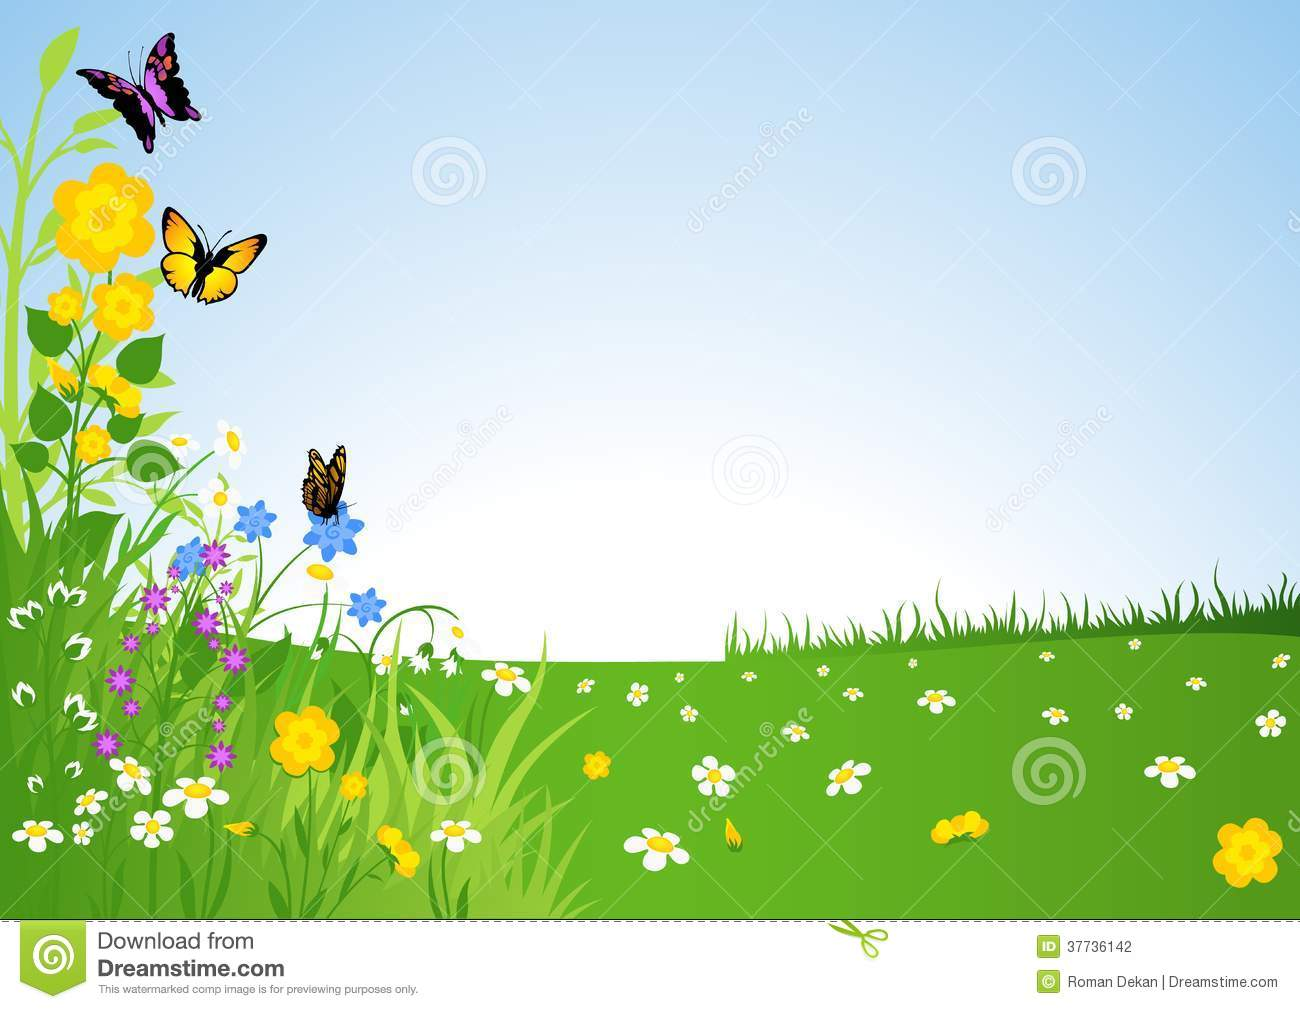 spring clipart background - photo #27